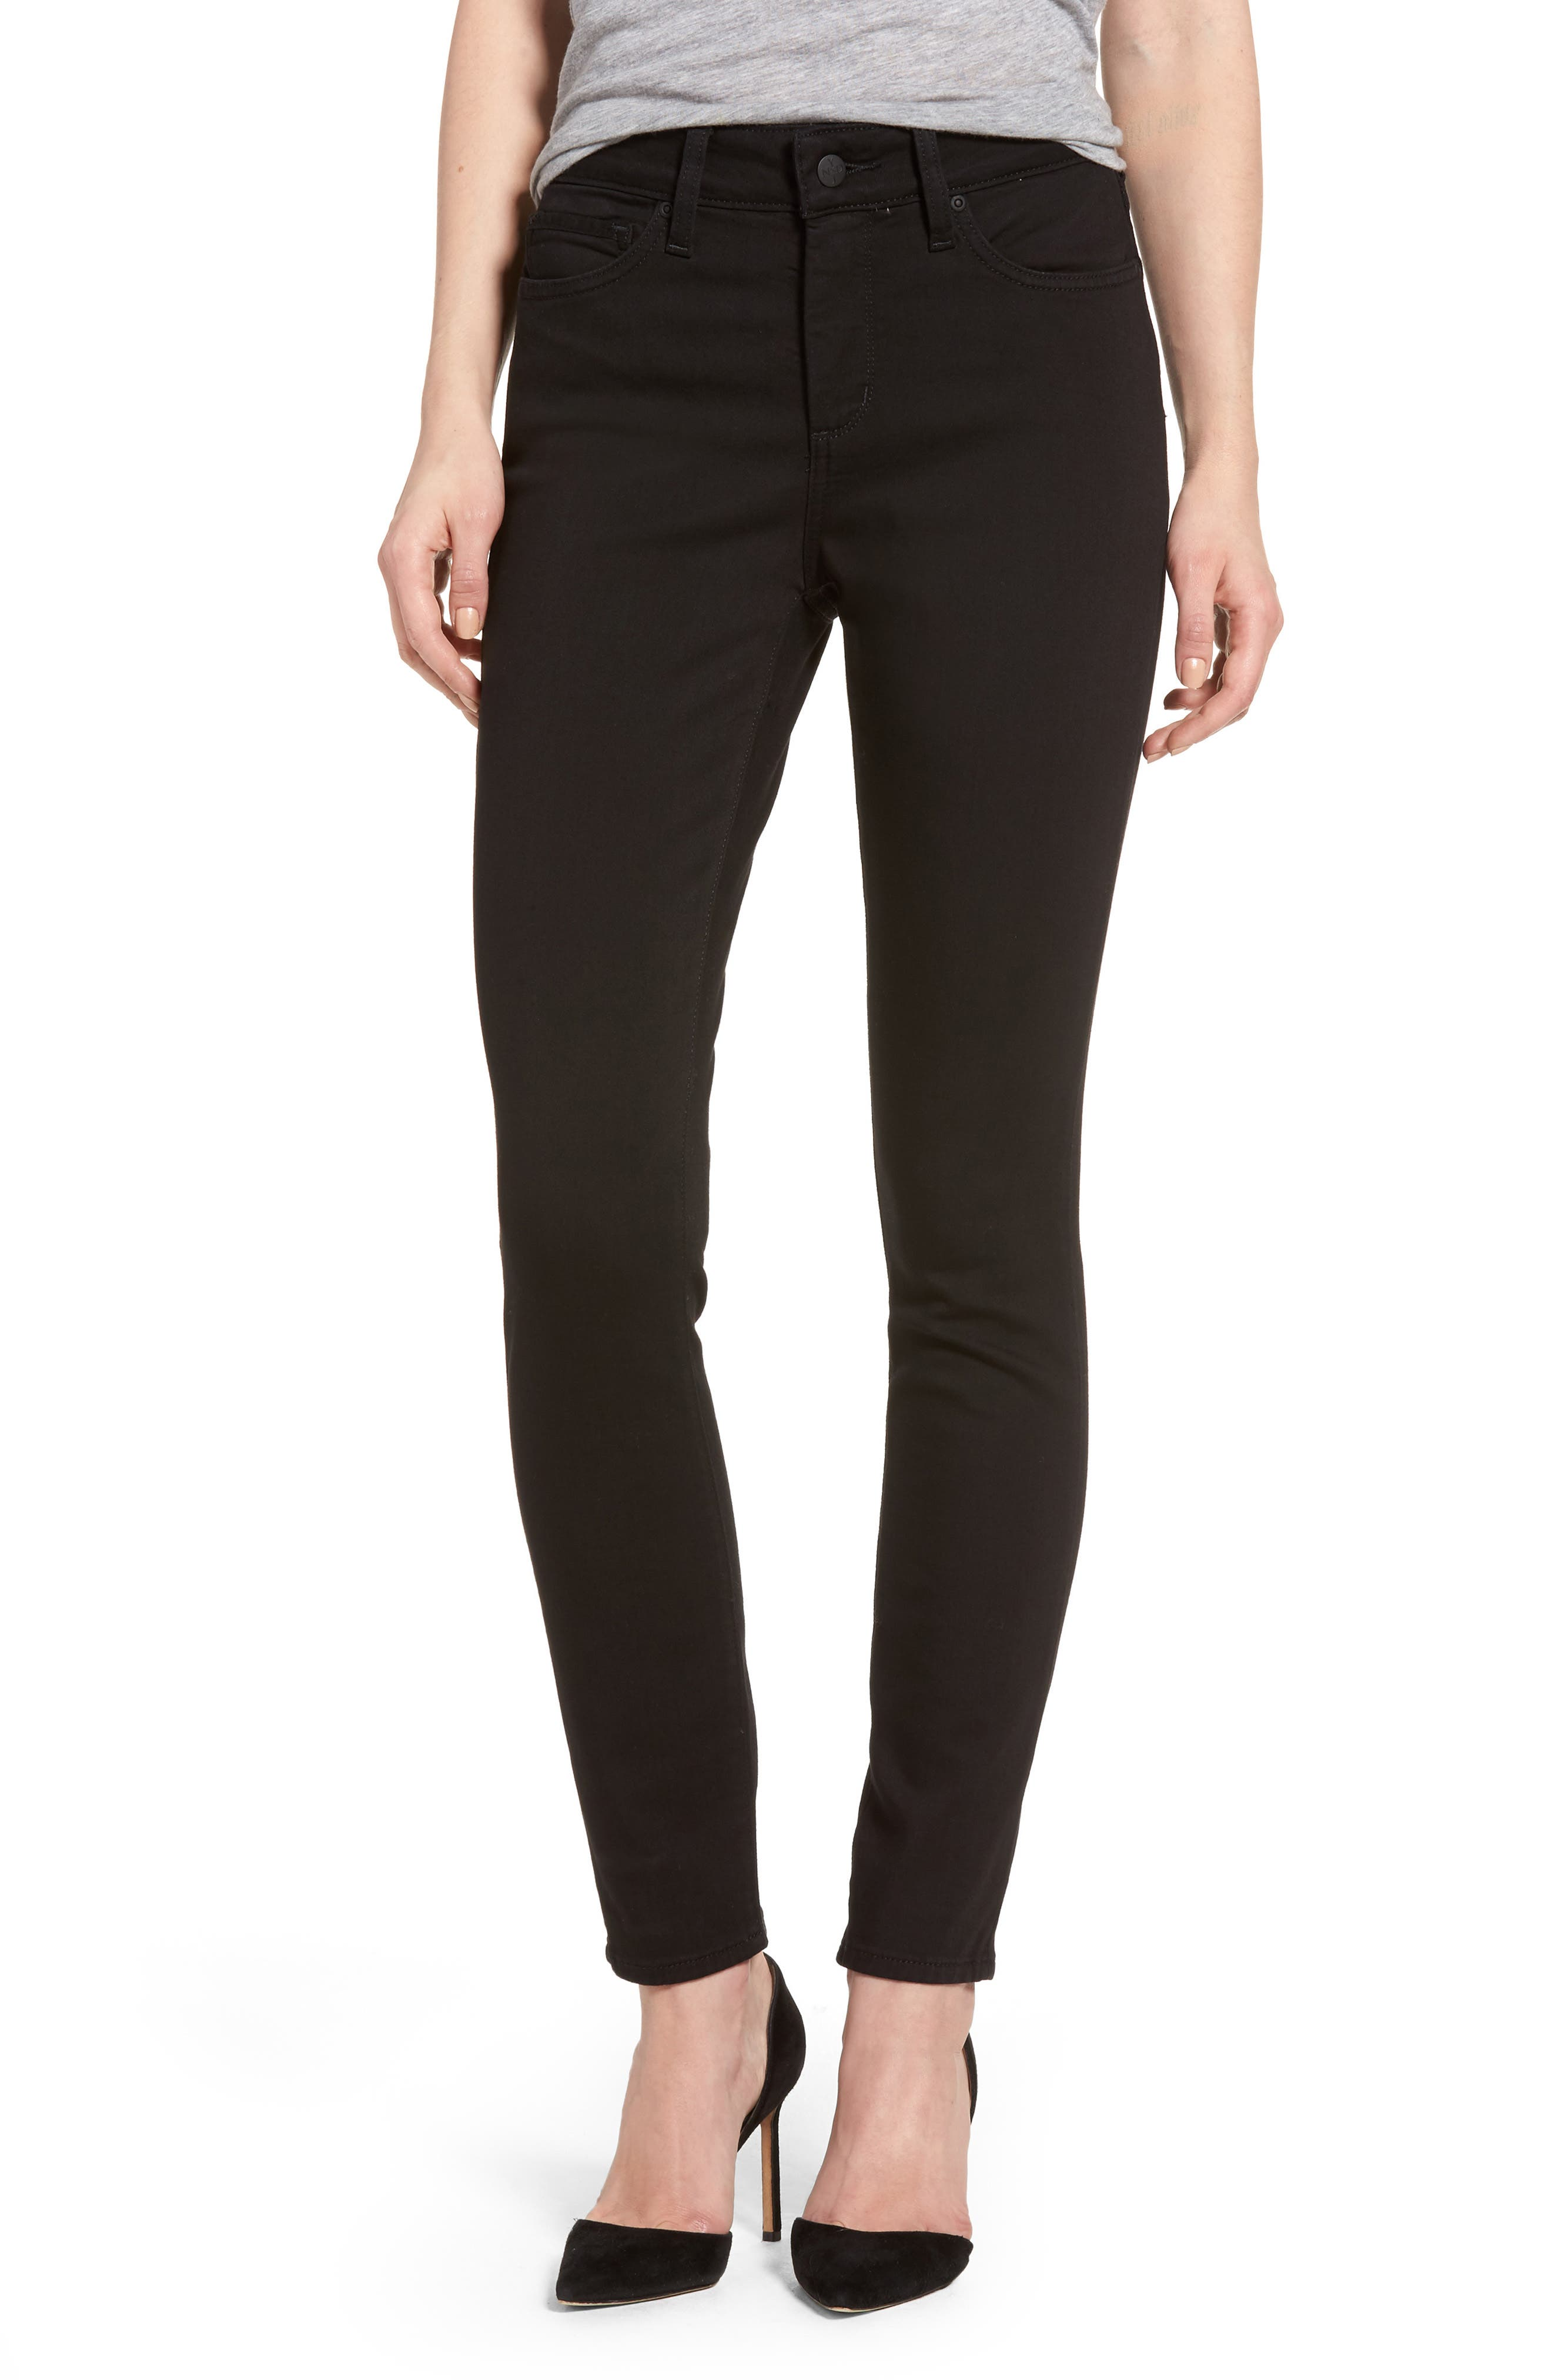 Ami Stretch Skinny Jeans,                             Main thumbnail 1, color,                             001